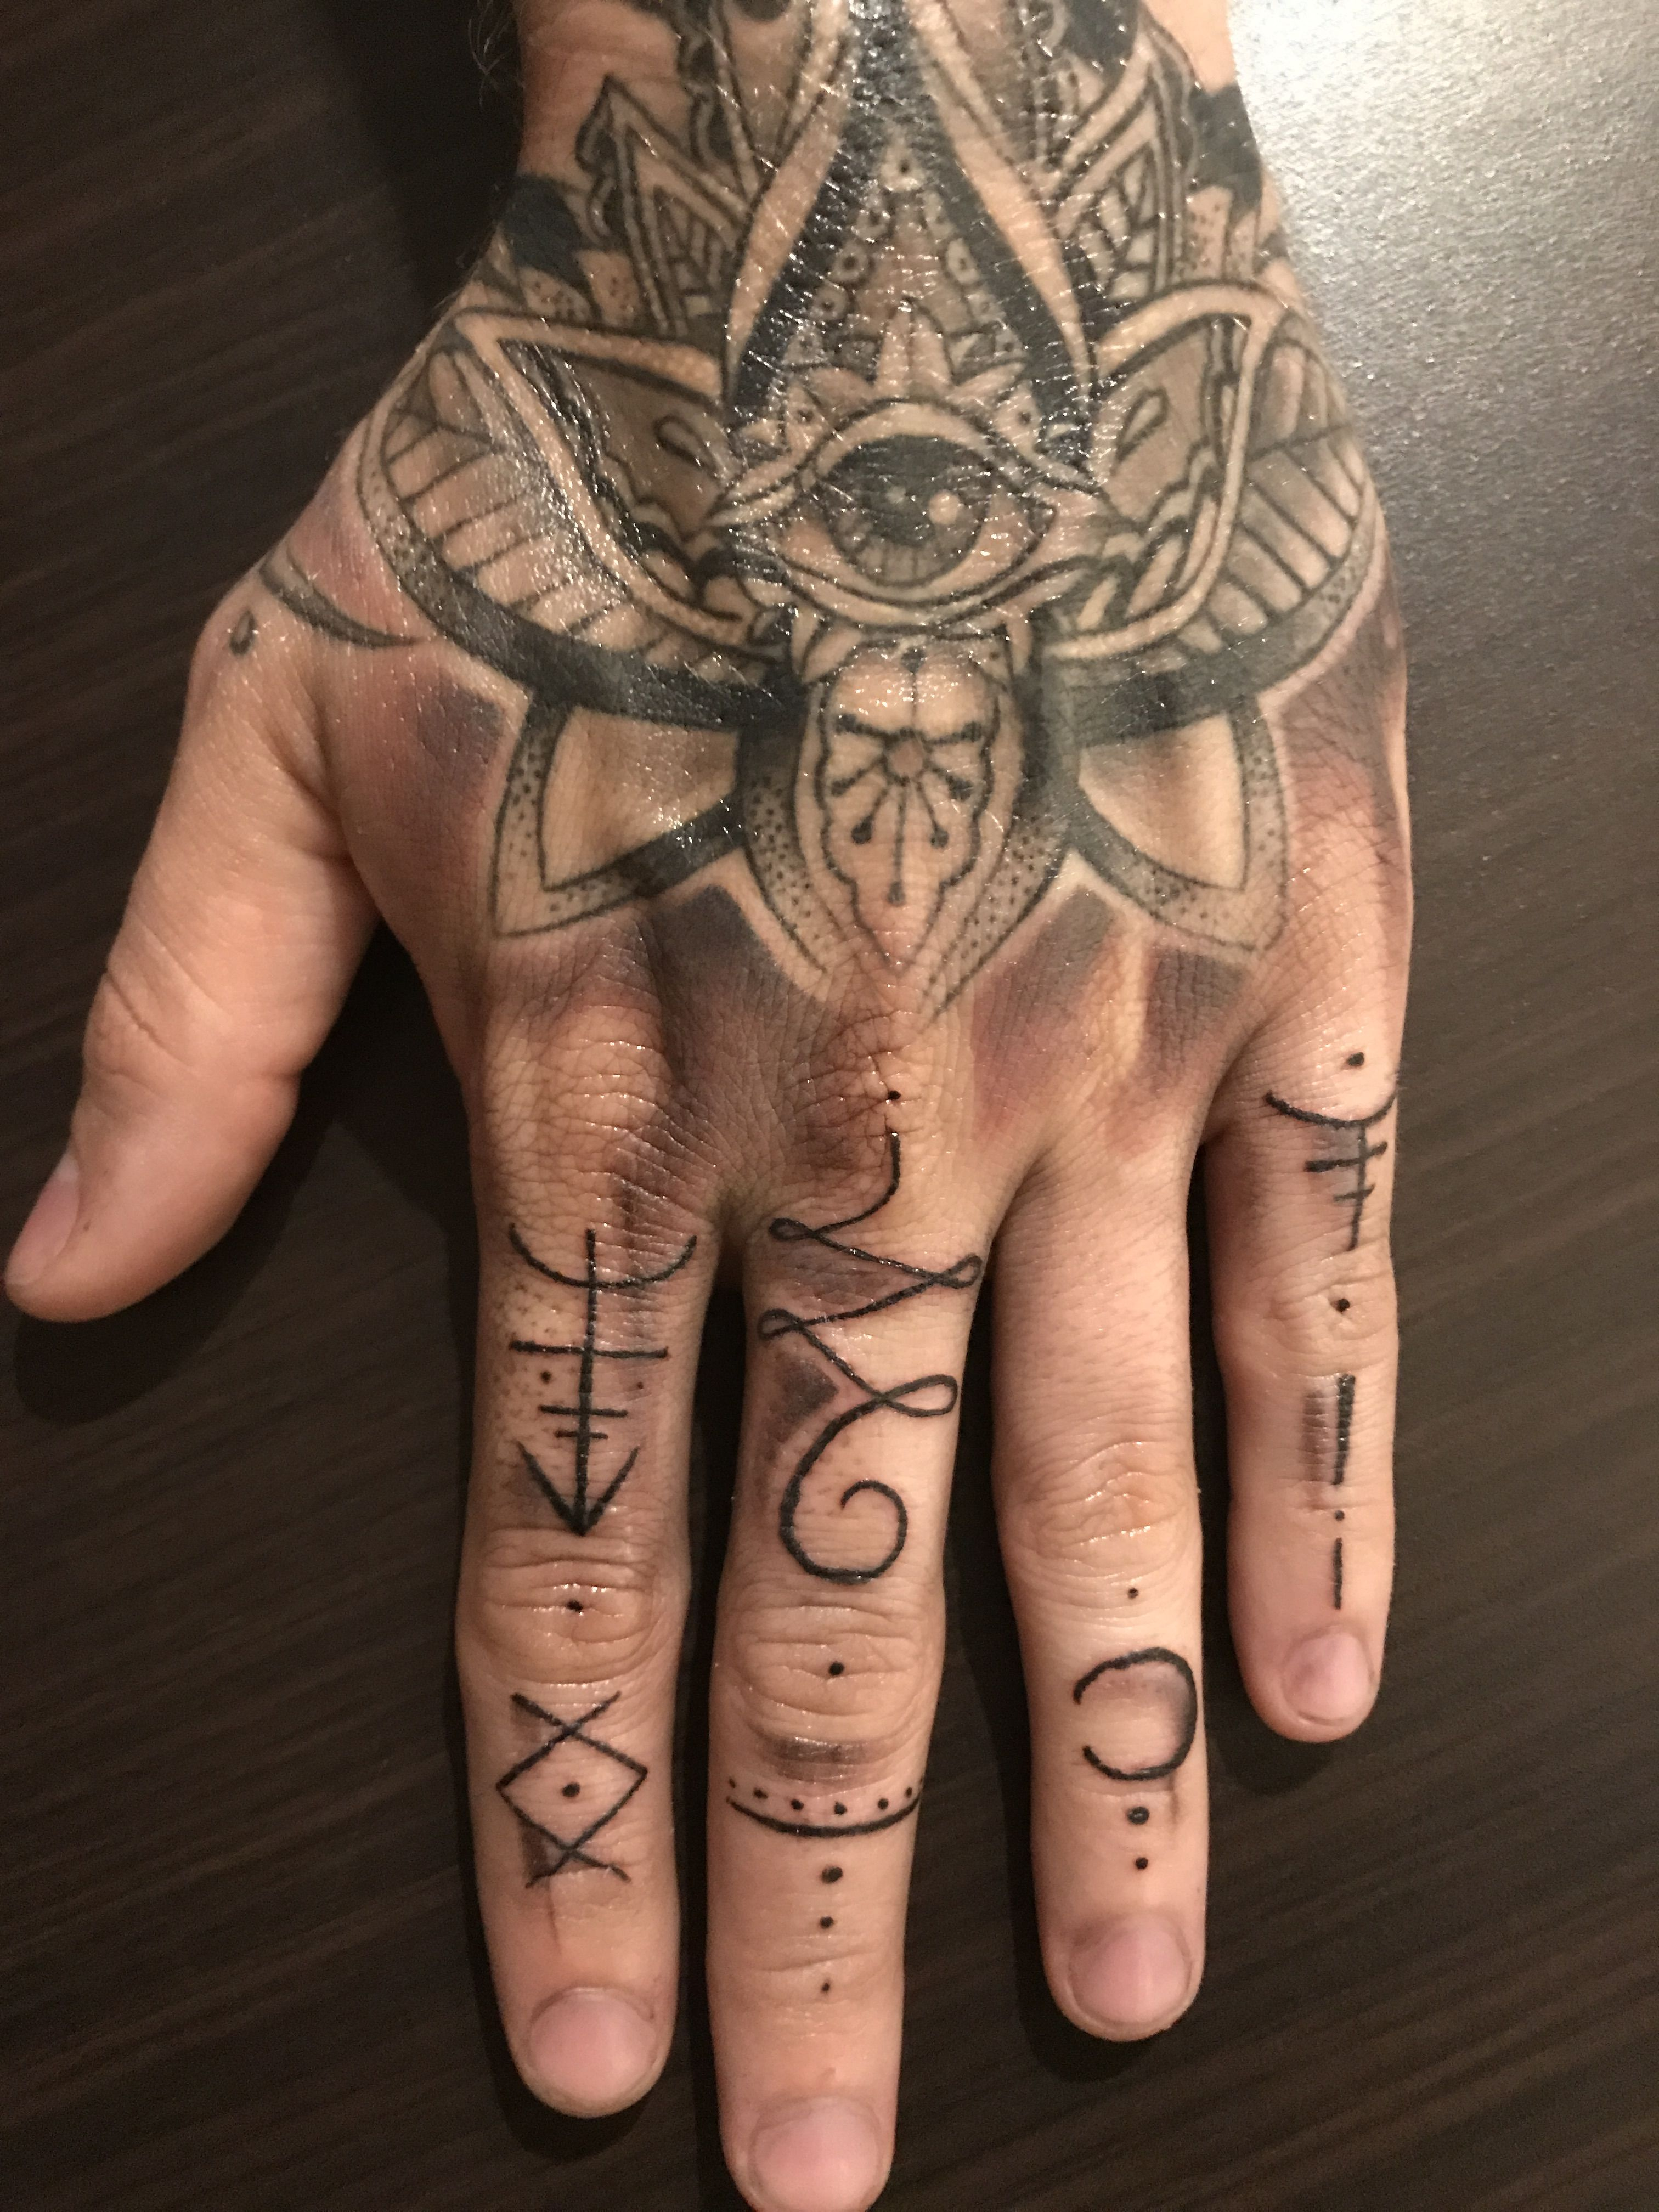 Pin by Alec on Tattoos Hand tattoos for guys, Men finger